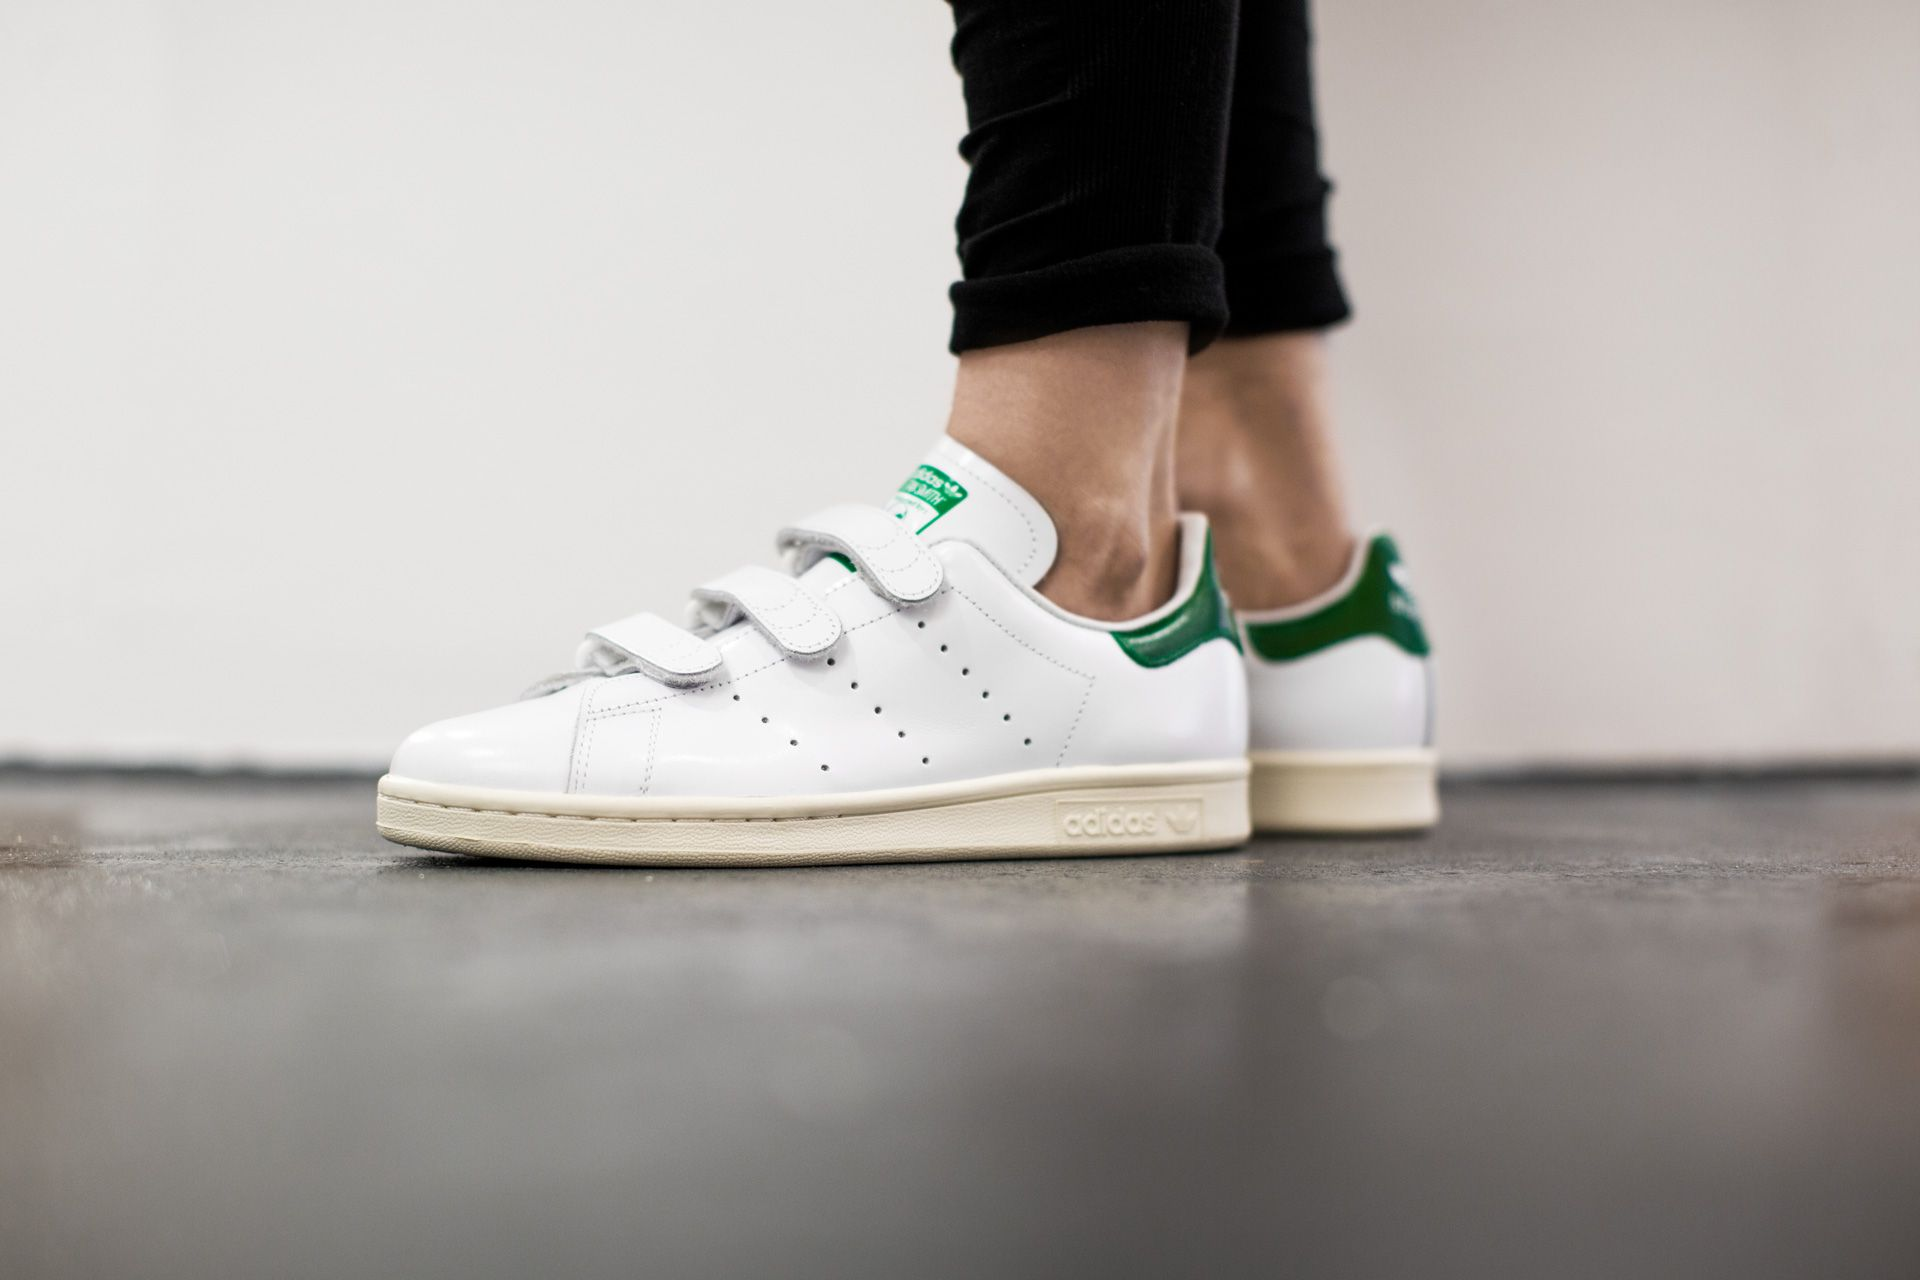 ADIDAS ORIGINALS STAN SMITH CF NIGO FTWWHTFTWWHTGREEN